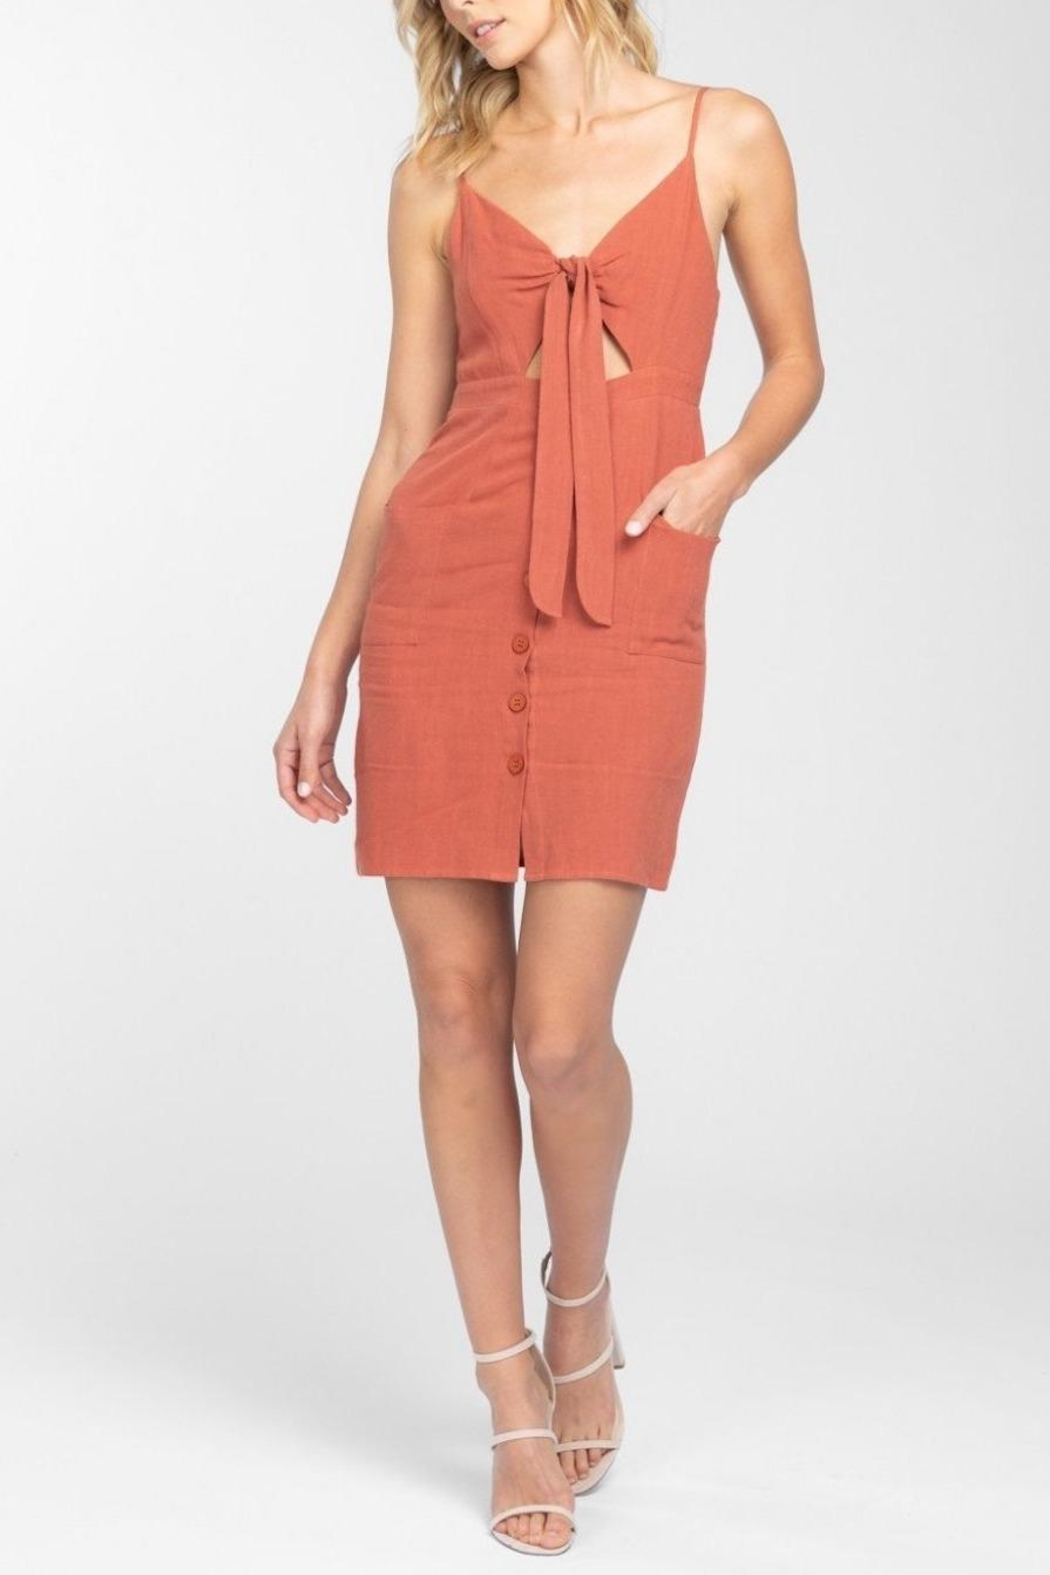 Everly Button Front-Tie Mini-Dress - Side Cropped Image